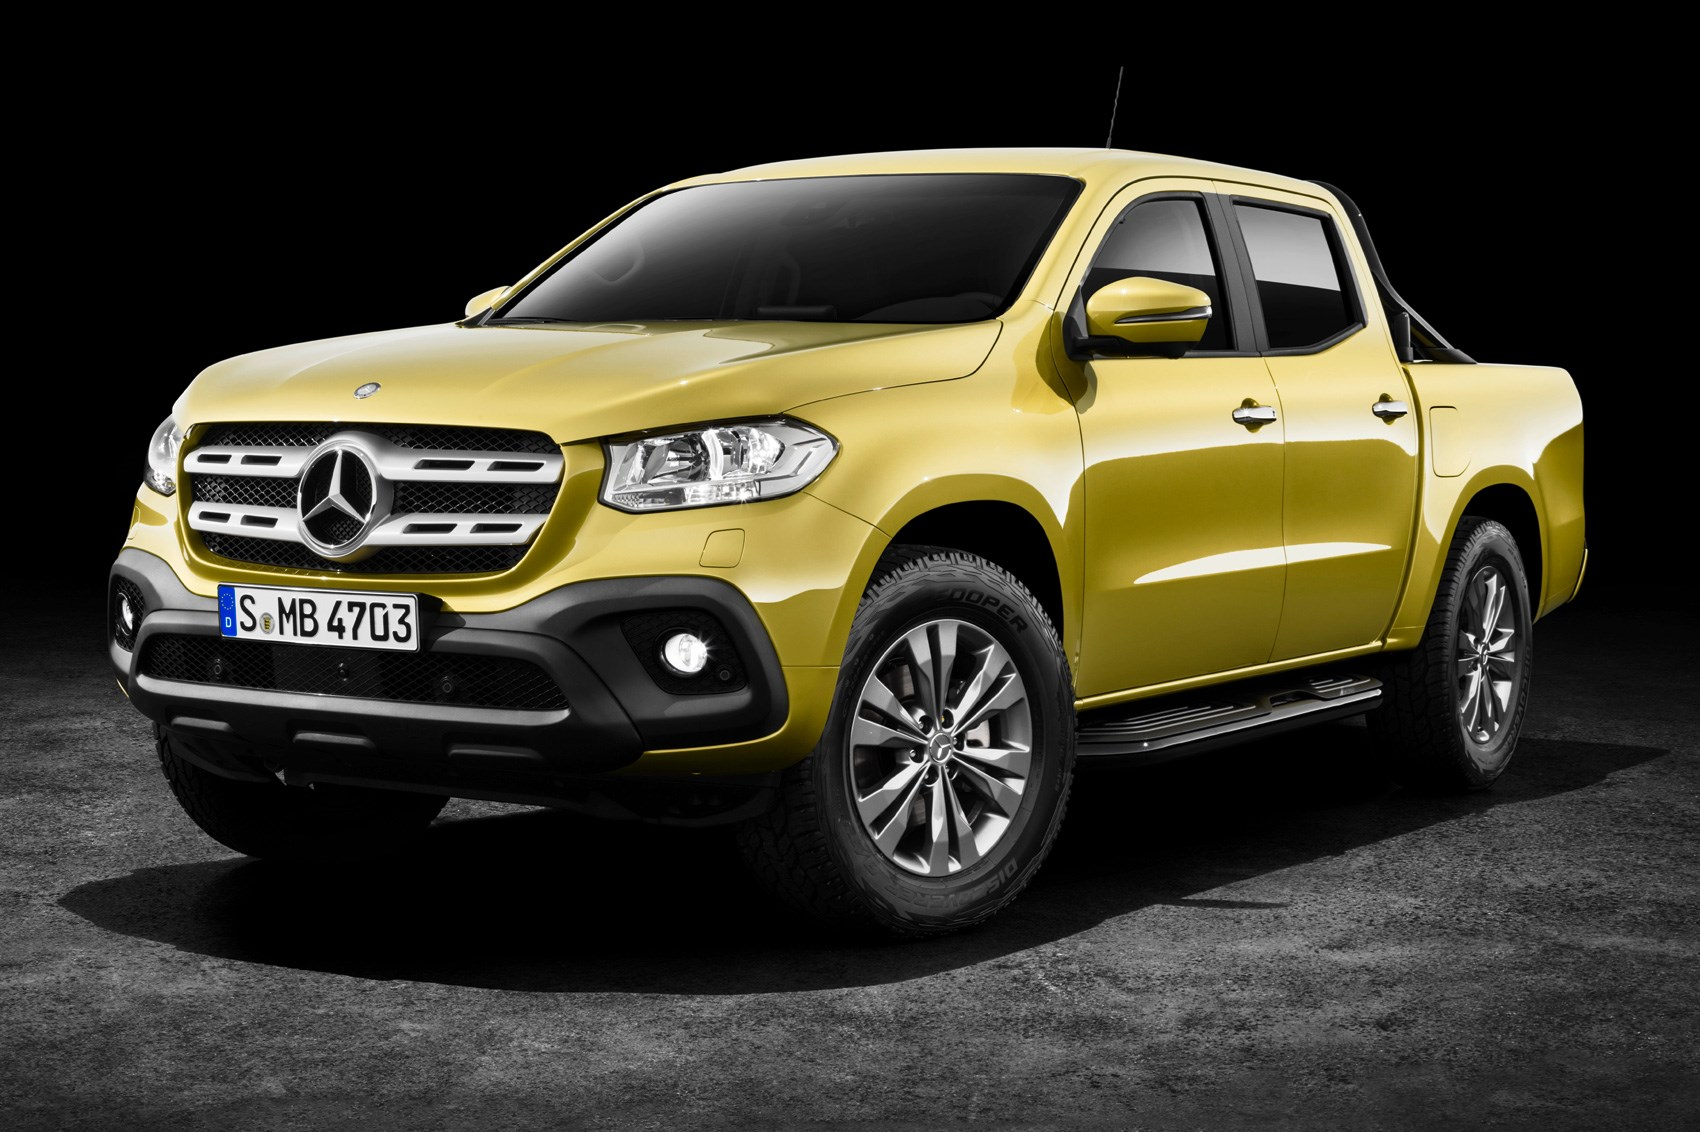 new mercedes benz x class pickup revealed in full by car magazine. Black Bedroom Furniture Sets. Home Design Ideas